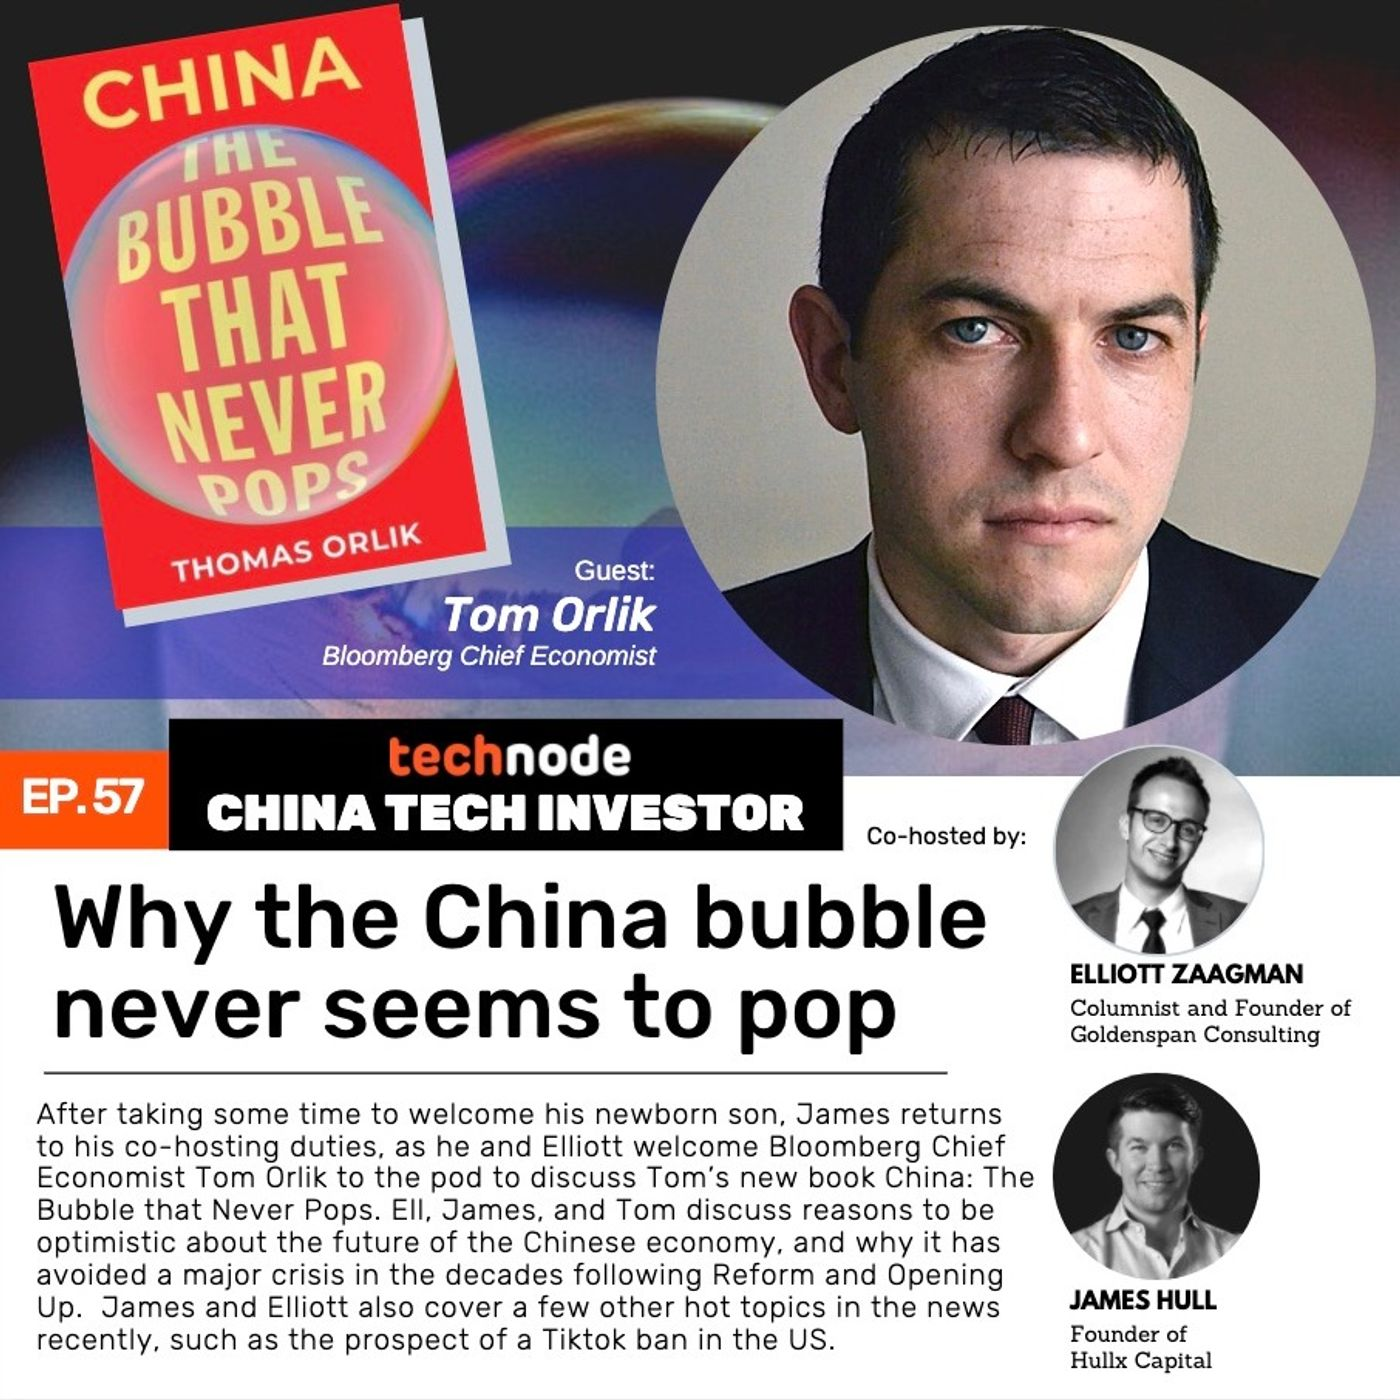 57: Tom Orlik on why the China bubble never seems to pop